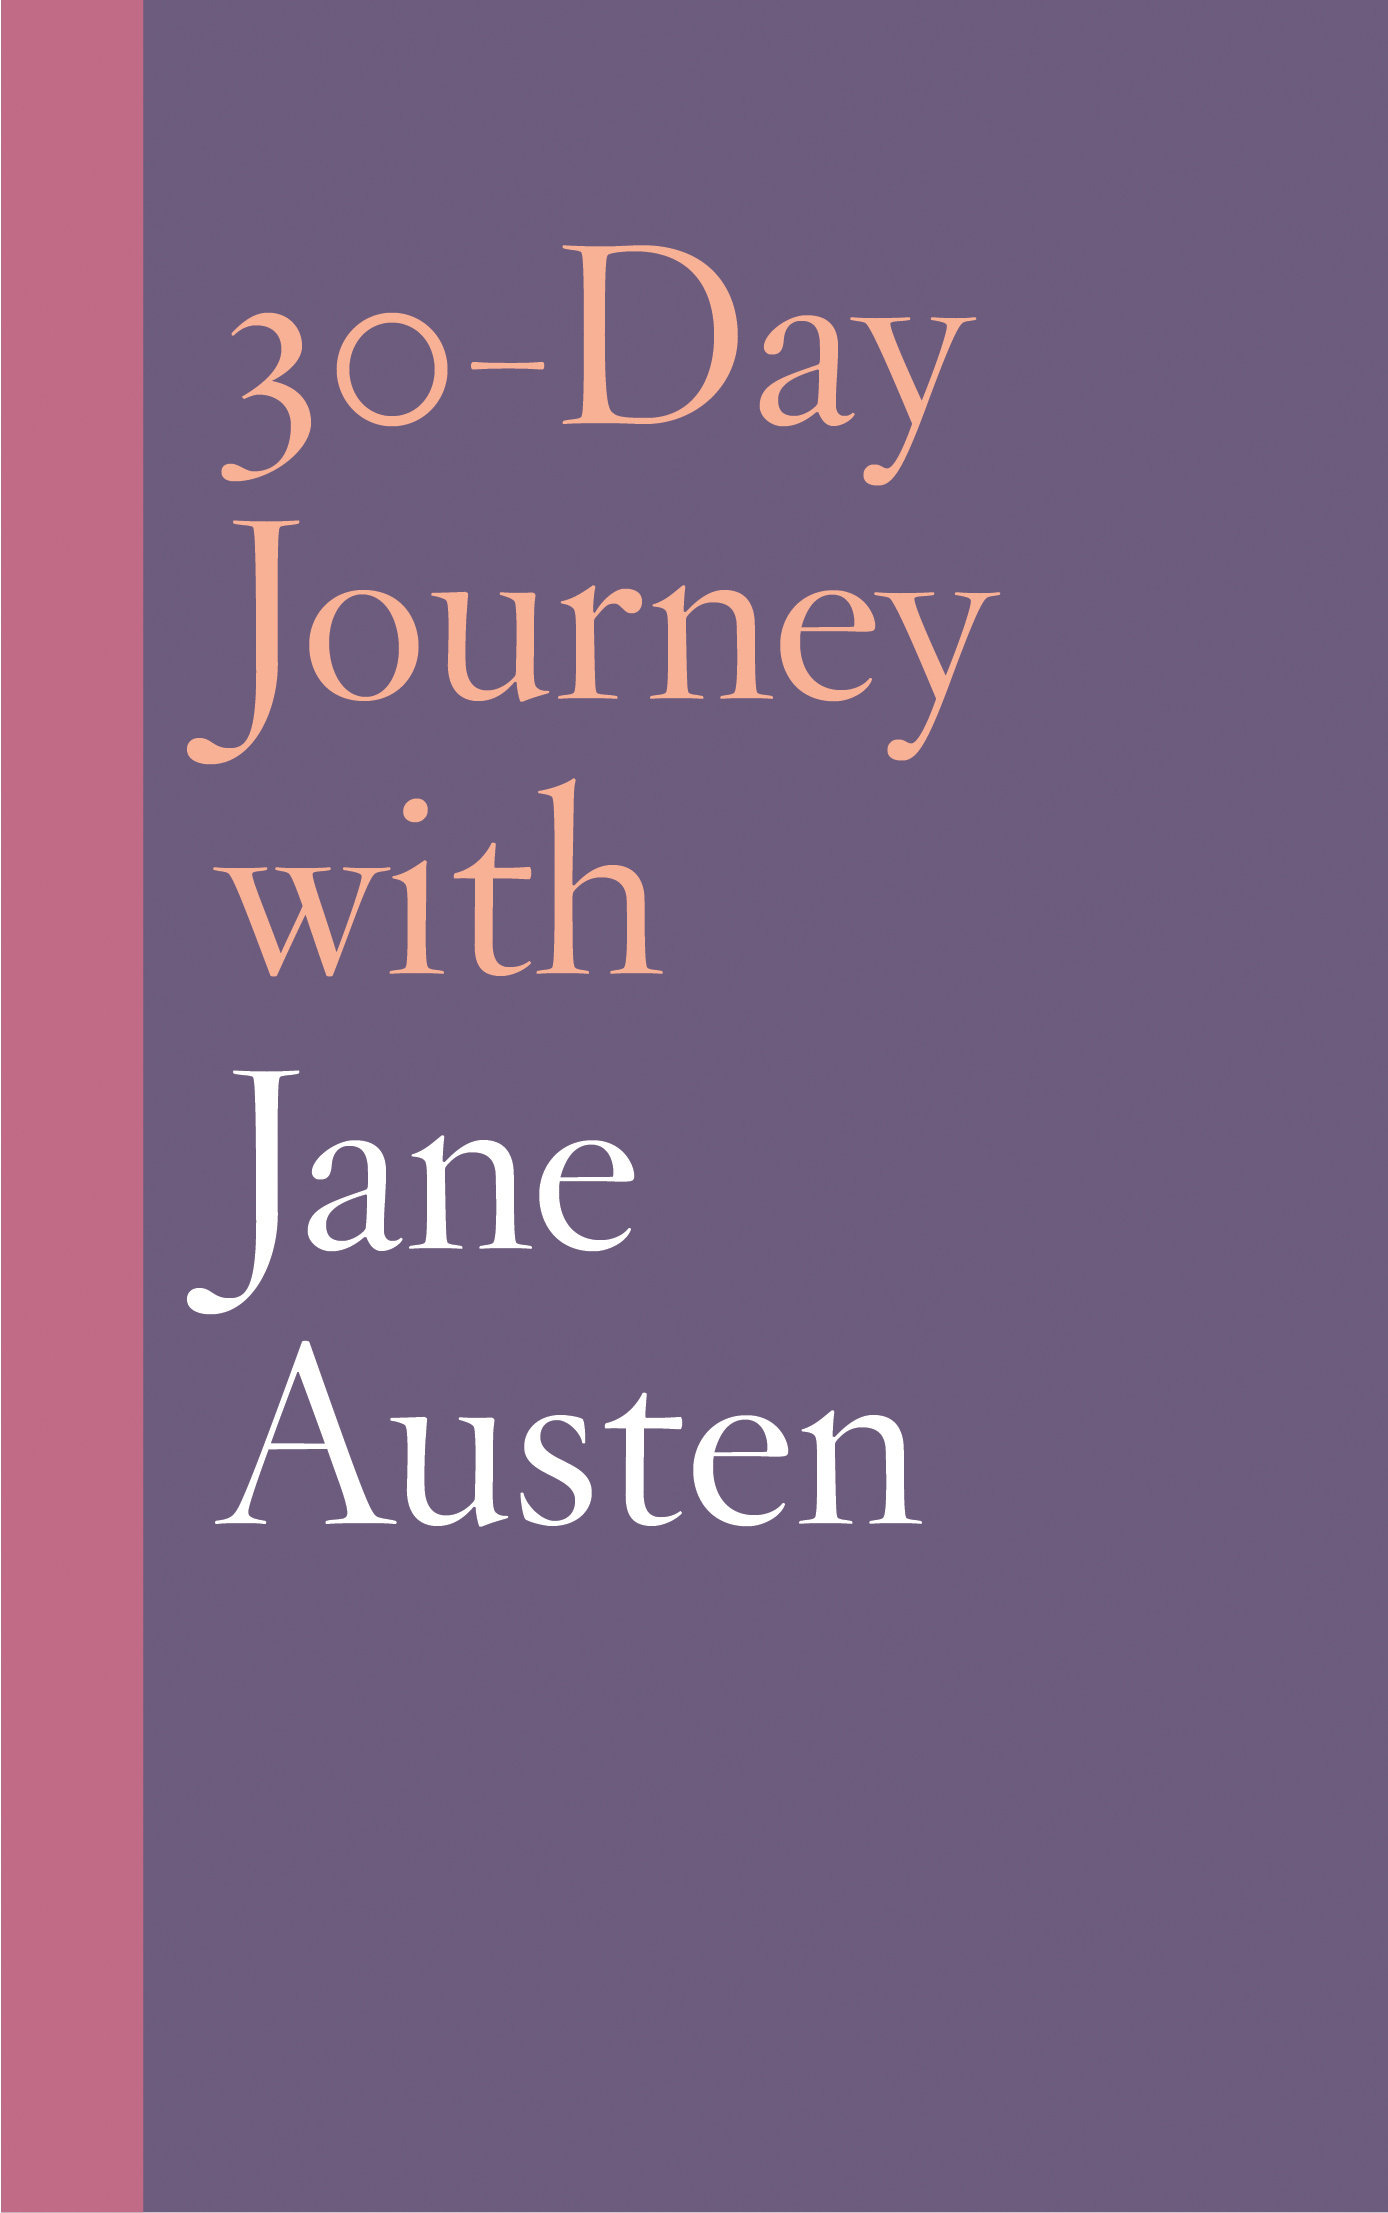 30-Day Journey with Jane Austen